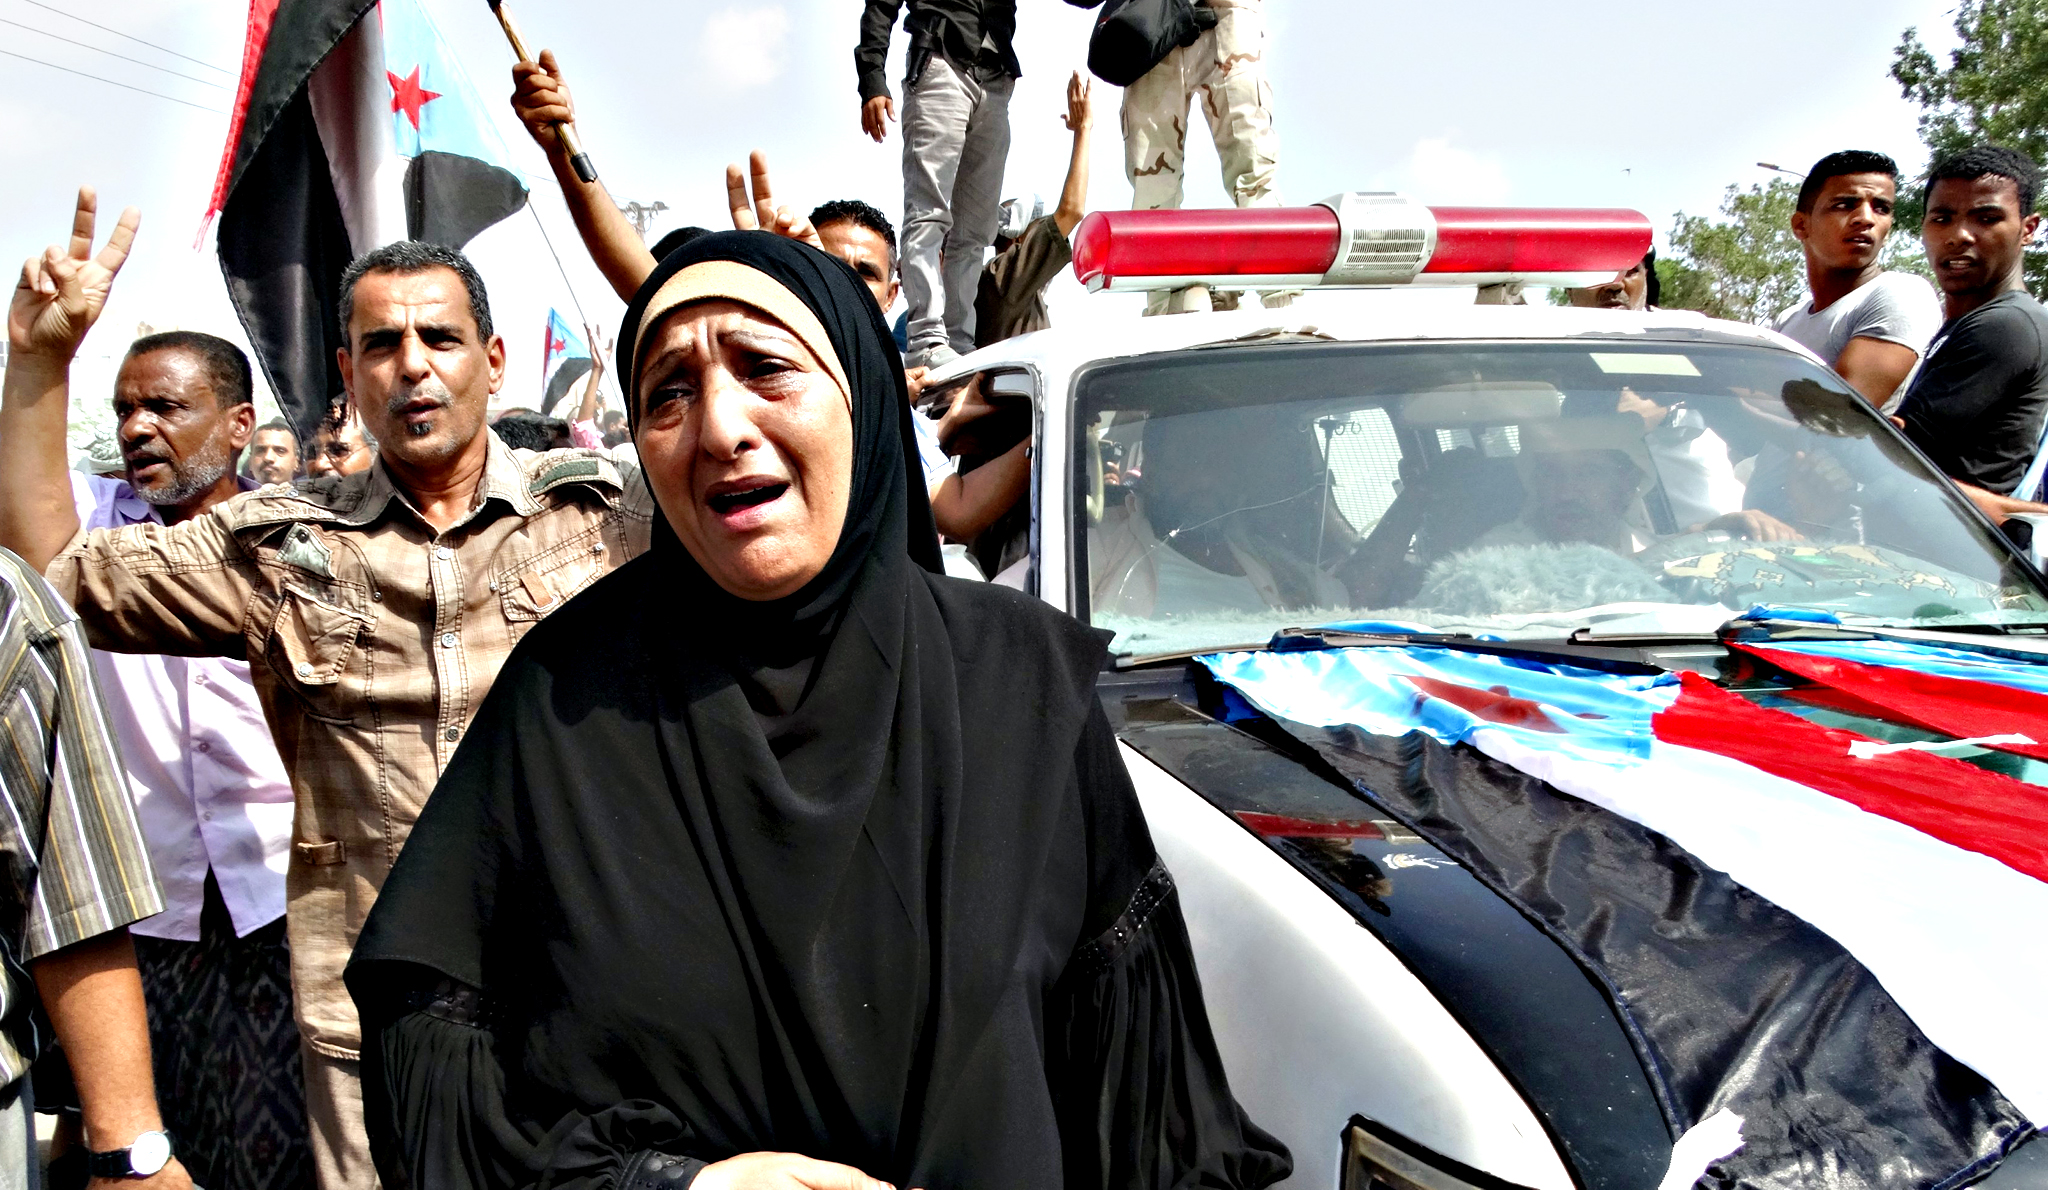 A woman reacts as she attends the funeral of the governor of Yemen's southern port city of Aden on Tuesday. The governor of Yemen's Aden province Jaafar Mohammed Saad was killed on Sunday when a suicide bomber rammed his car into the governor's convoy in the western part of Aden city